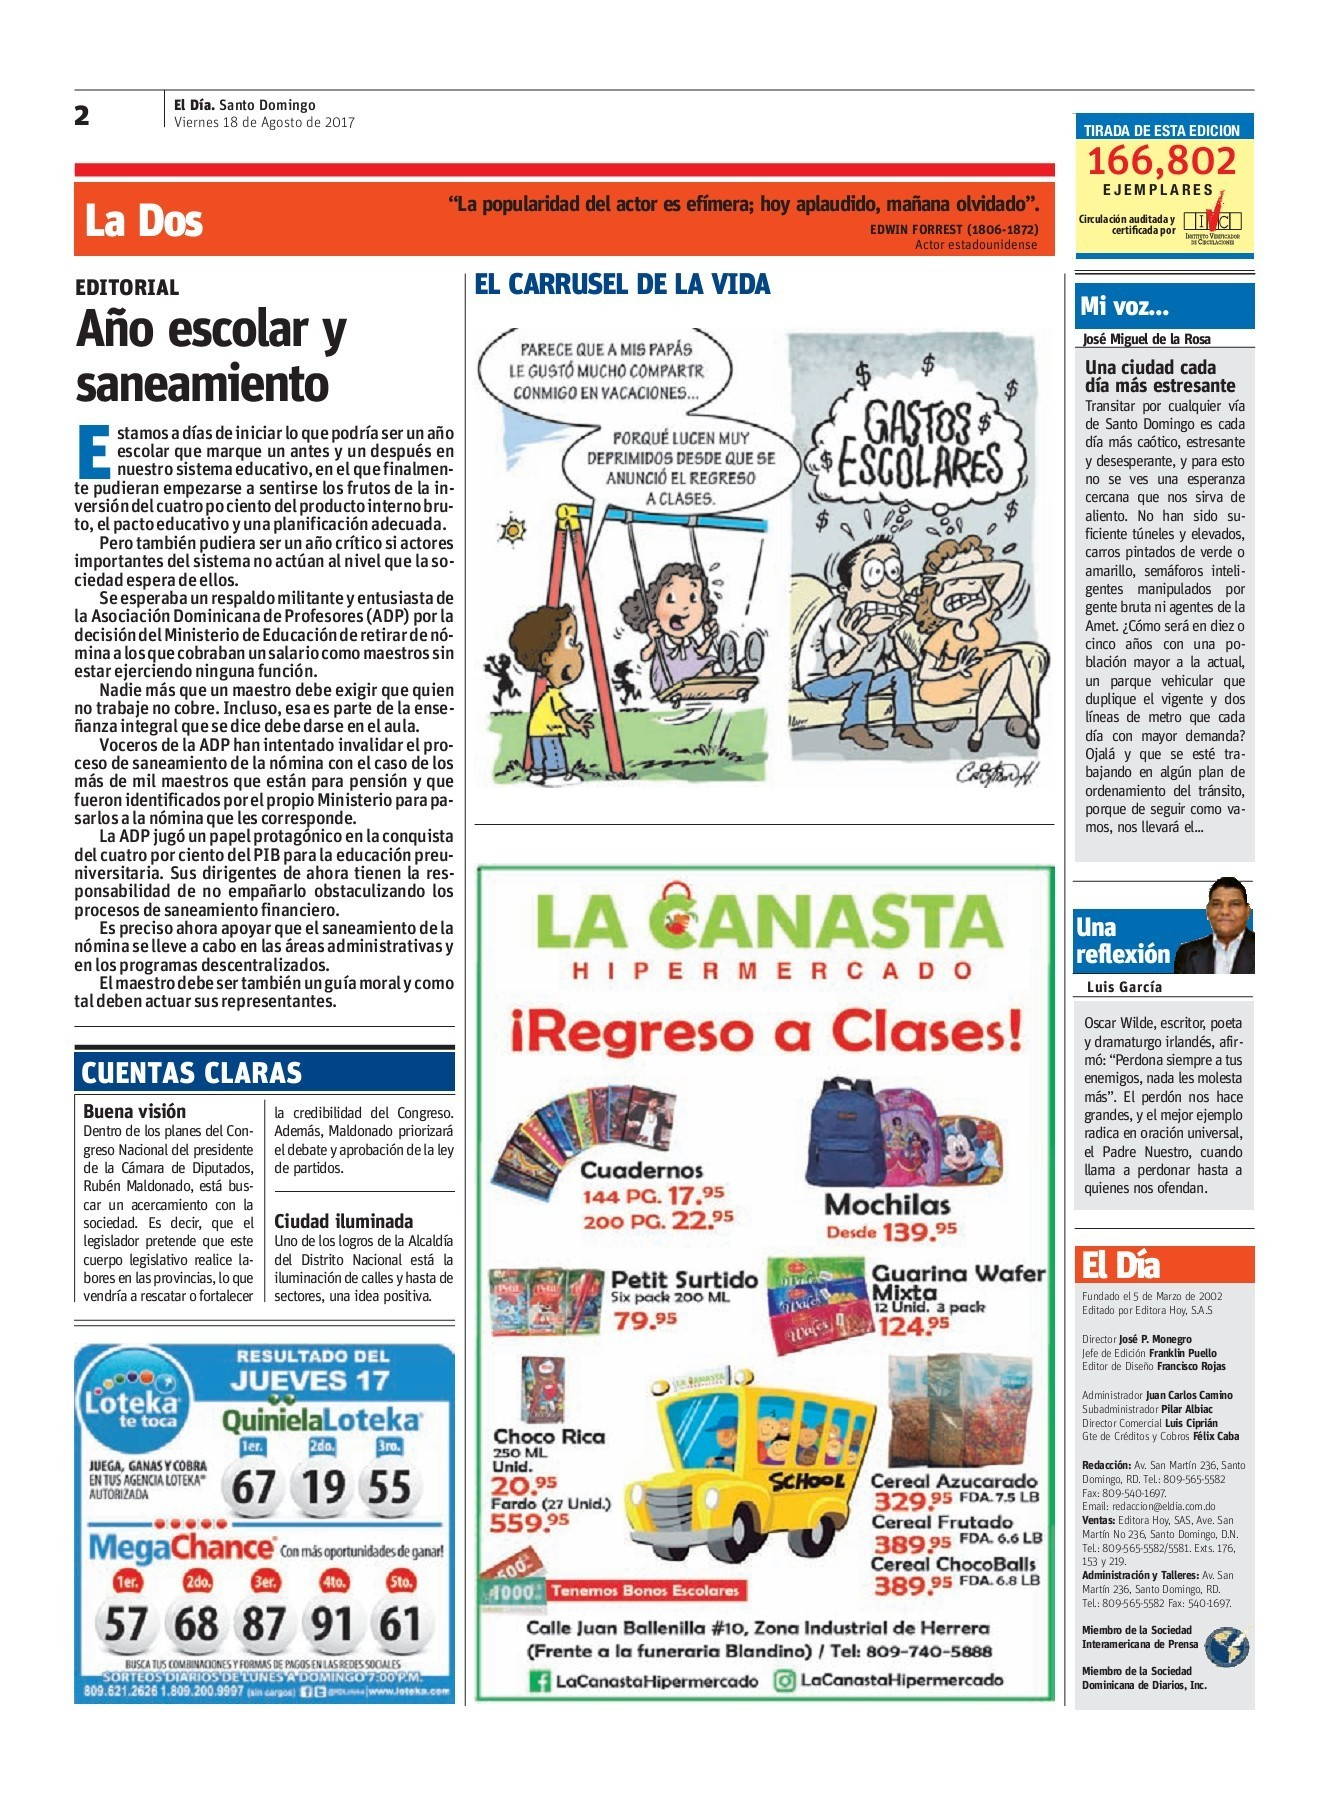 Calendario Escolar 2019 Entre Rios Más Populares Edici³n Impresa 18 8 2017 Pages 1 40 Text Version Of Calendario Escolar 2019 Entre Rios Recientes Colegio Mar­a Inmaculada